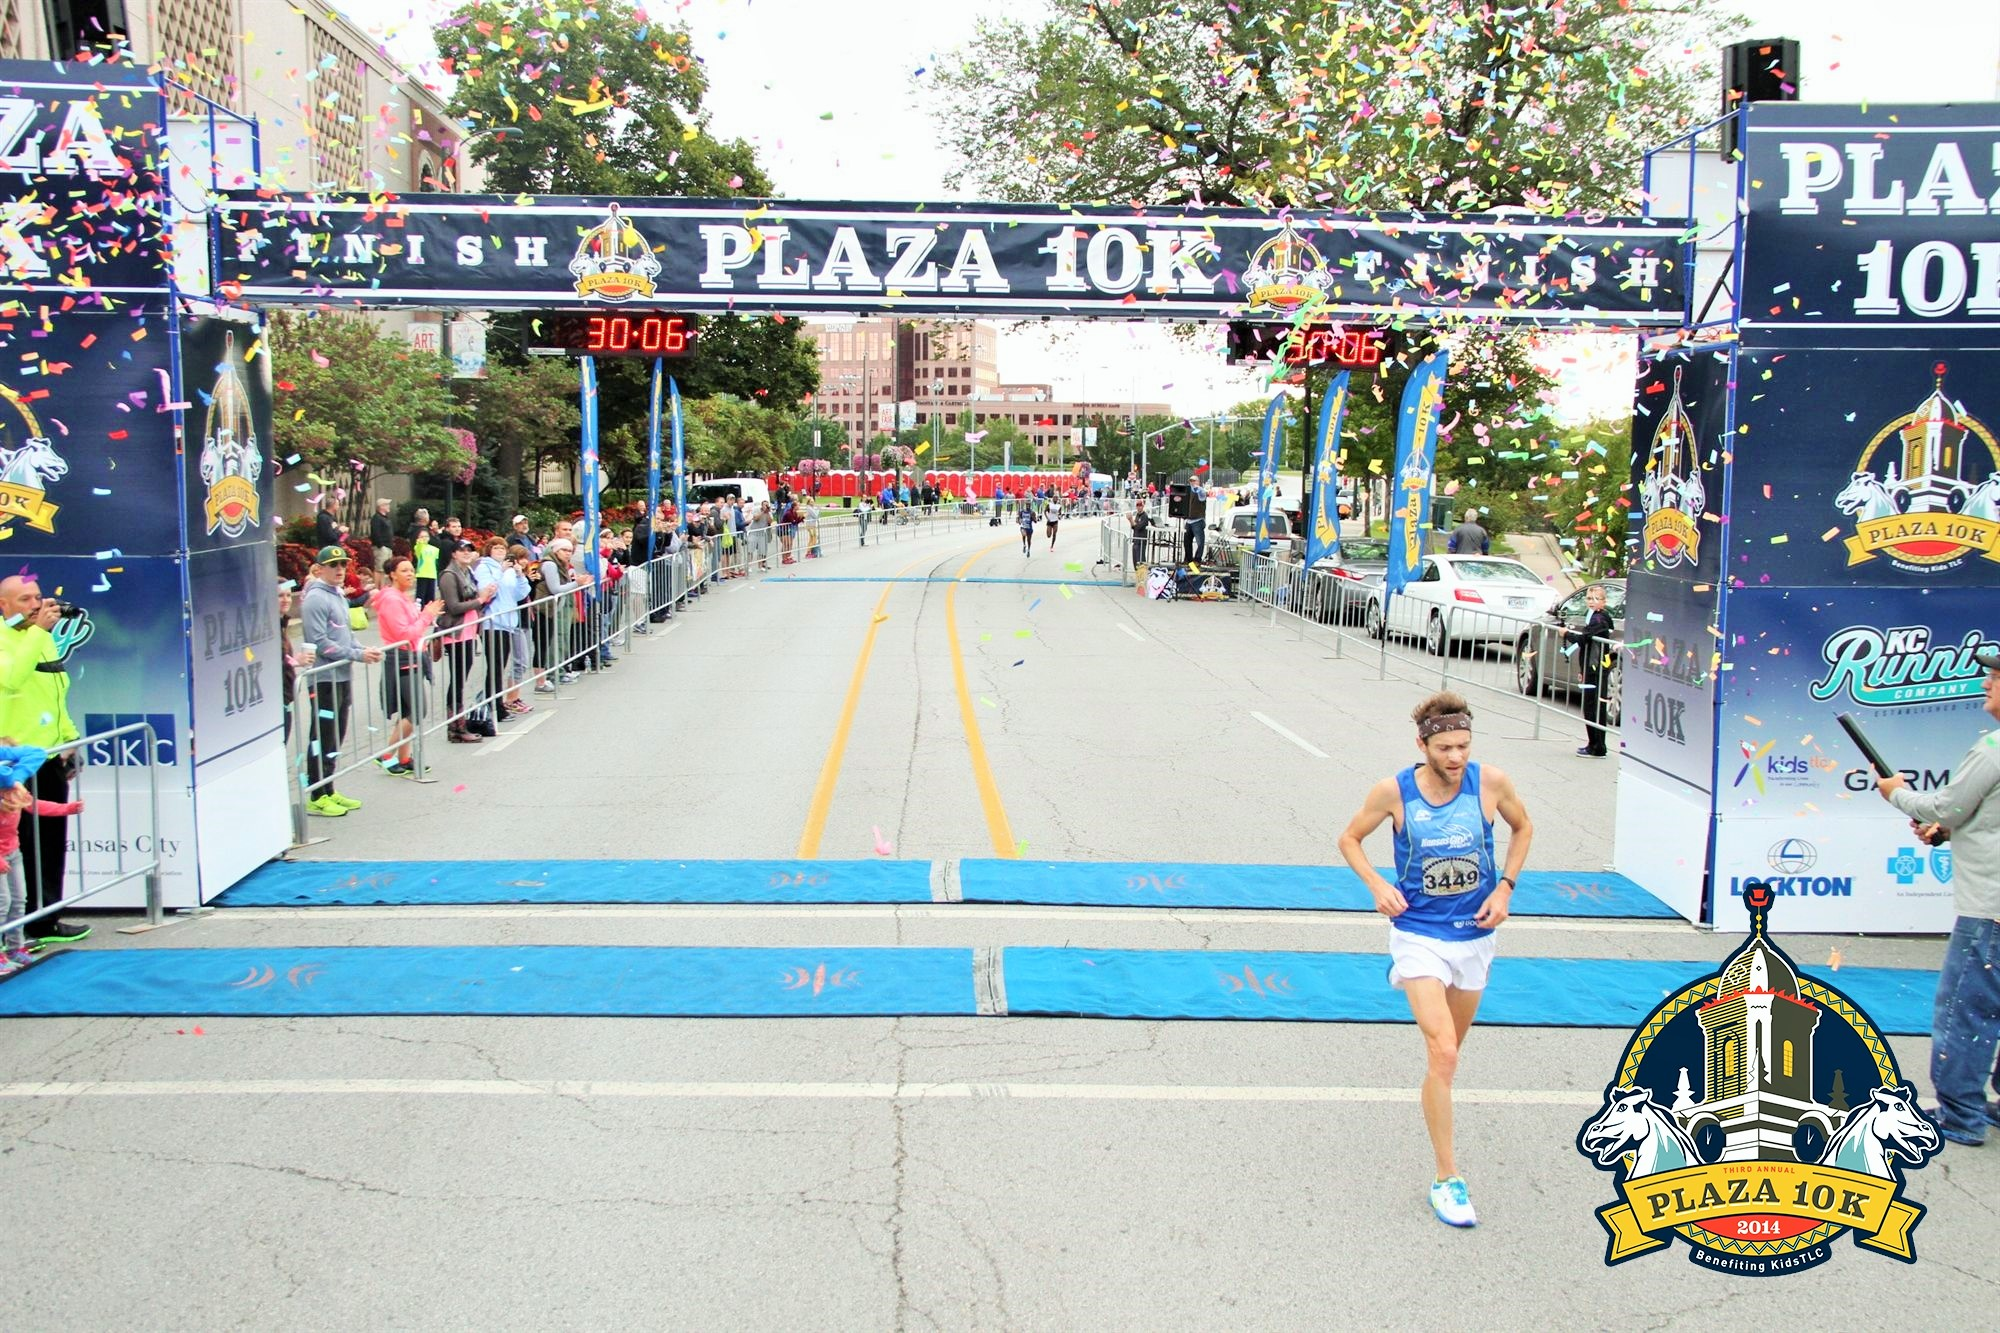 Plaza 10k Finisher